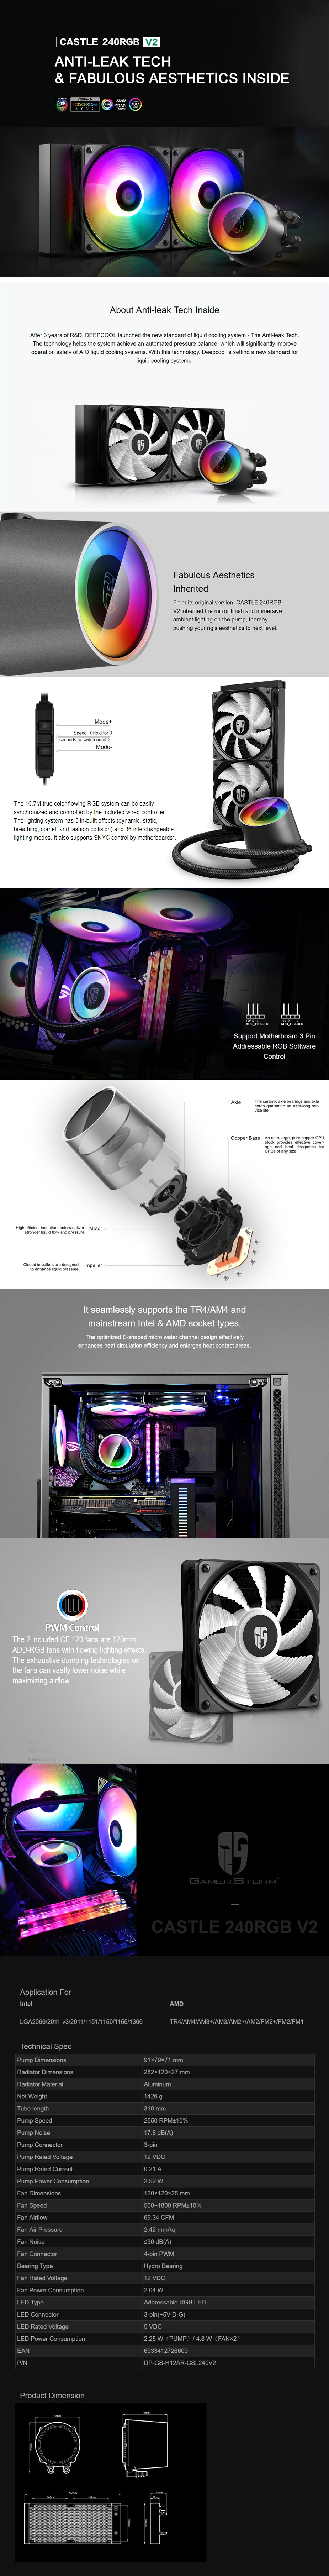 Deepcool Gamer Storm Castle 240 V2 ARGB AIO CPU Liquid Cooler - Desktop Overview 1